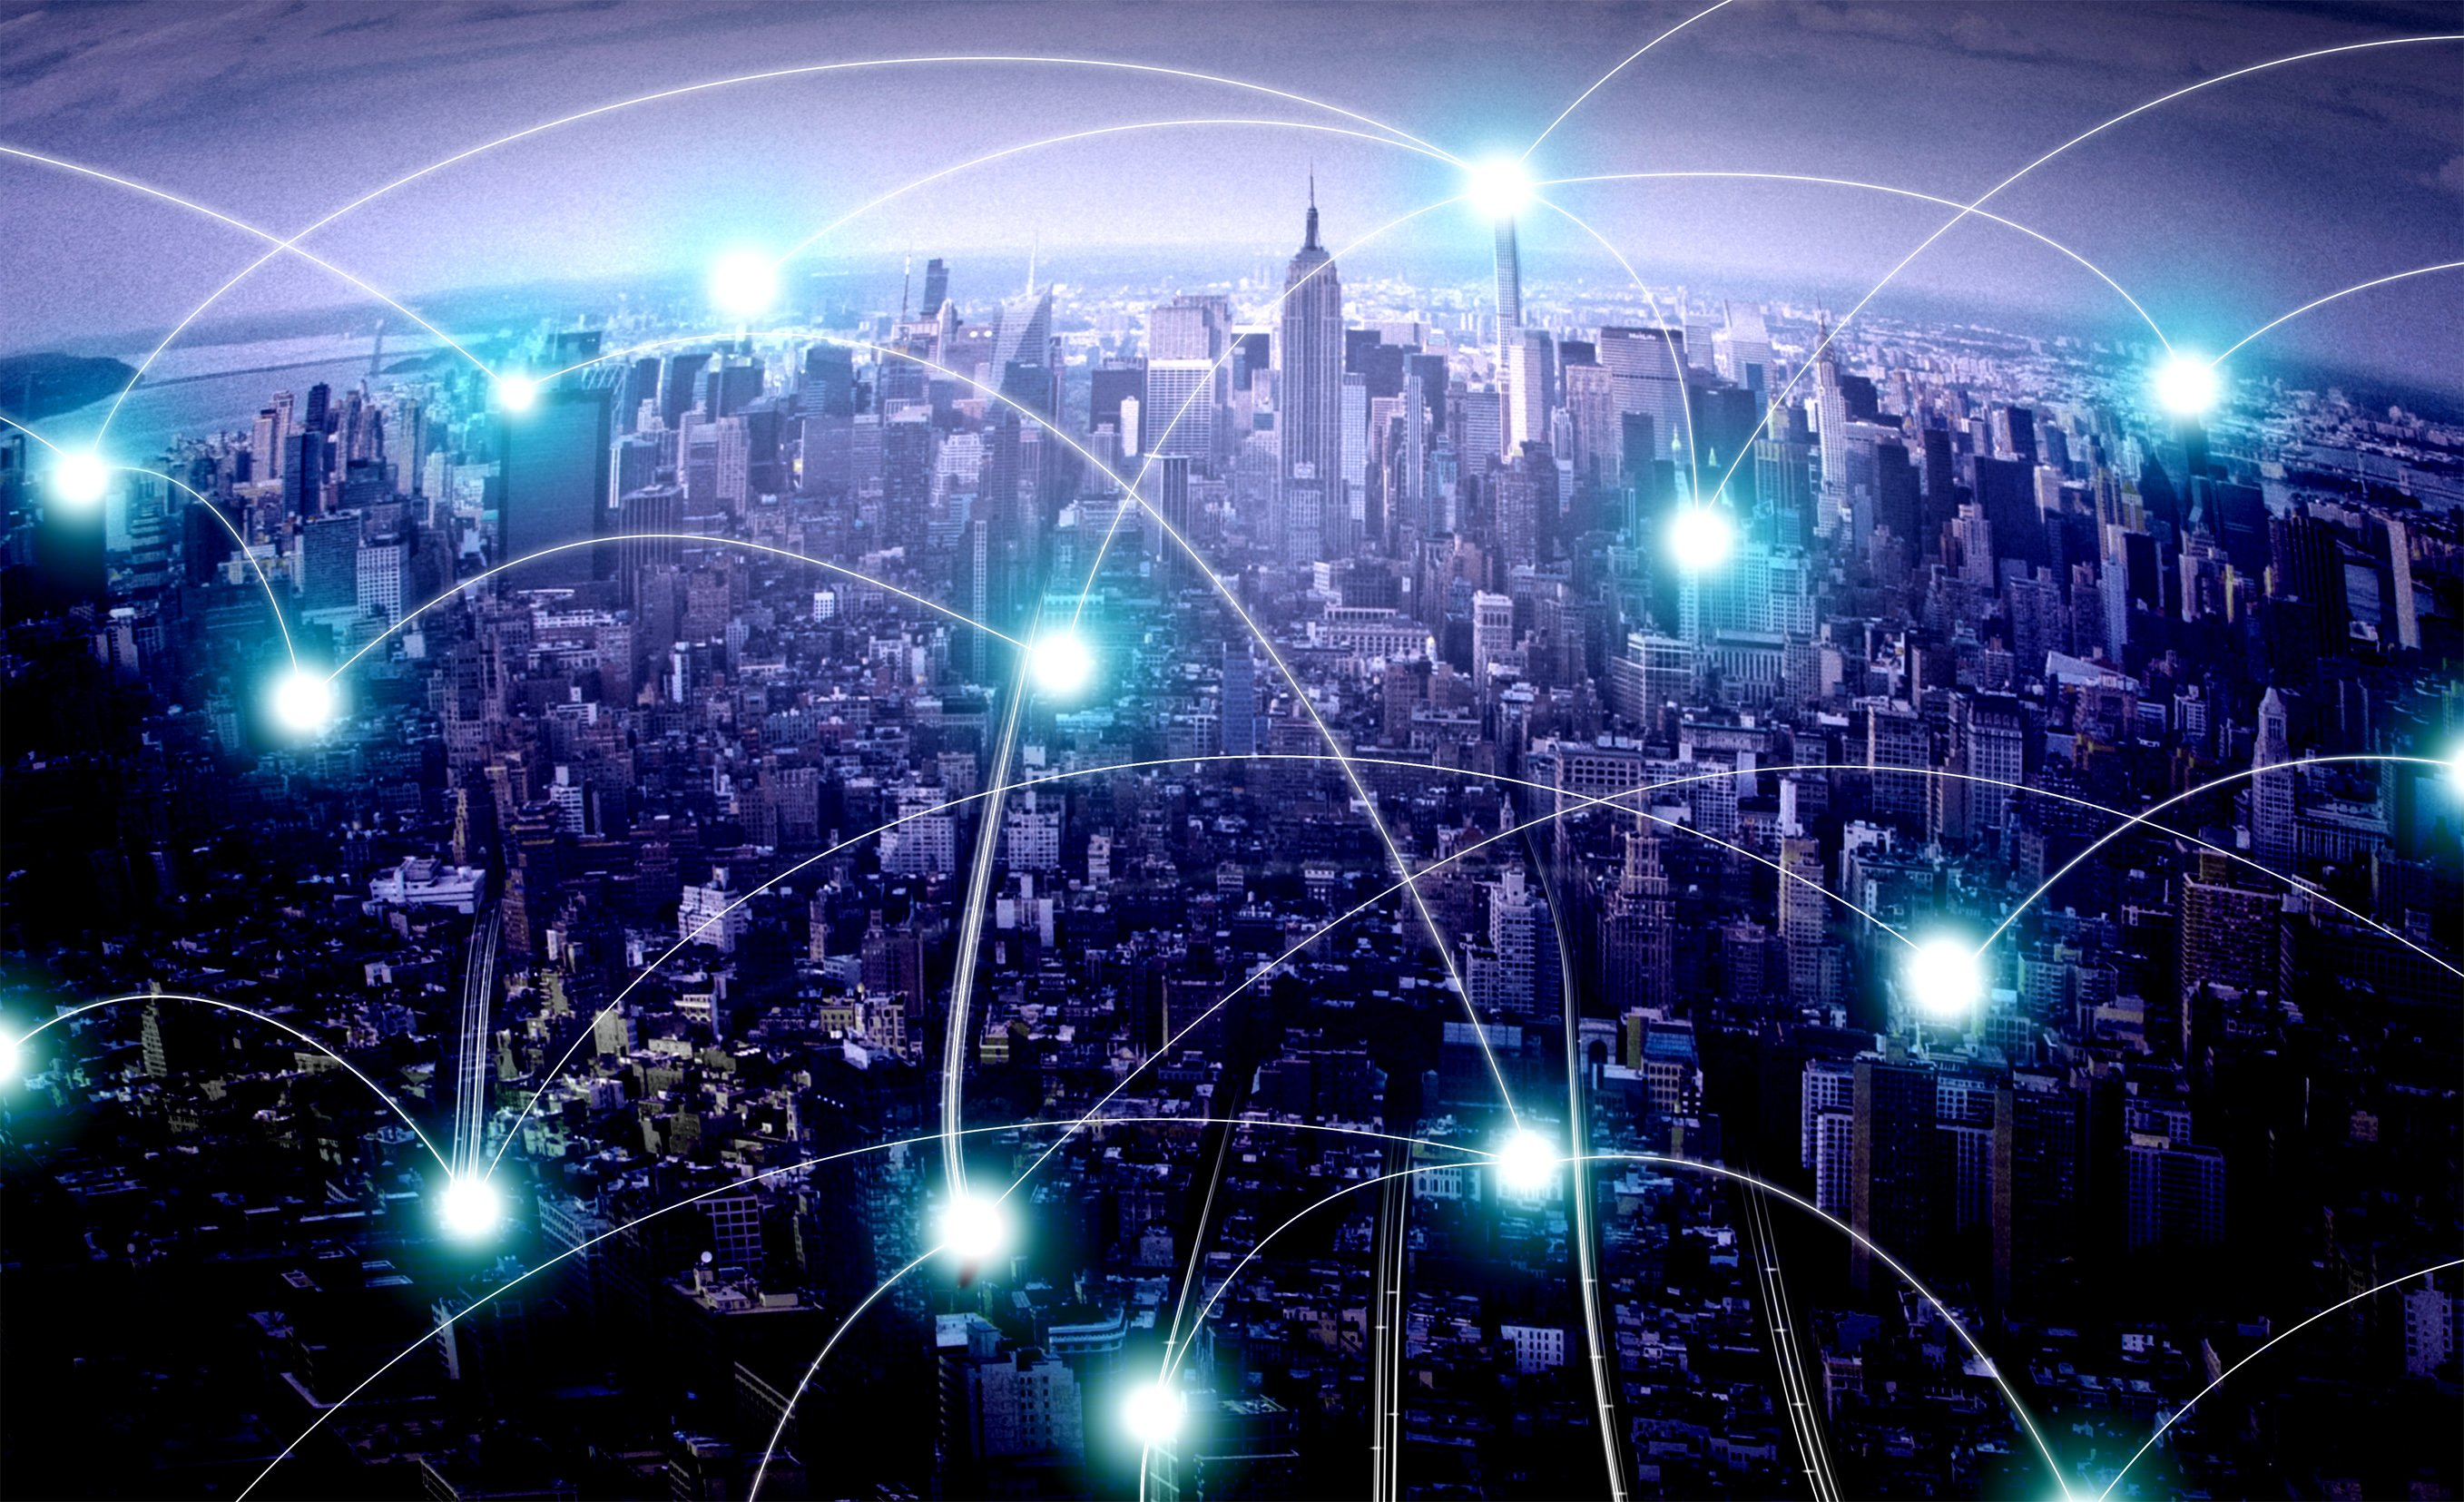 The_Urban_Network_-_A_City_and_Its_Human_and_Electronic_Connections